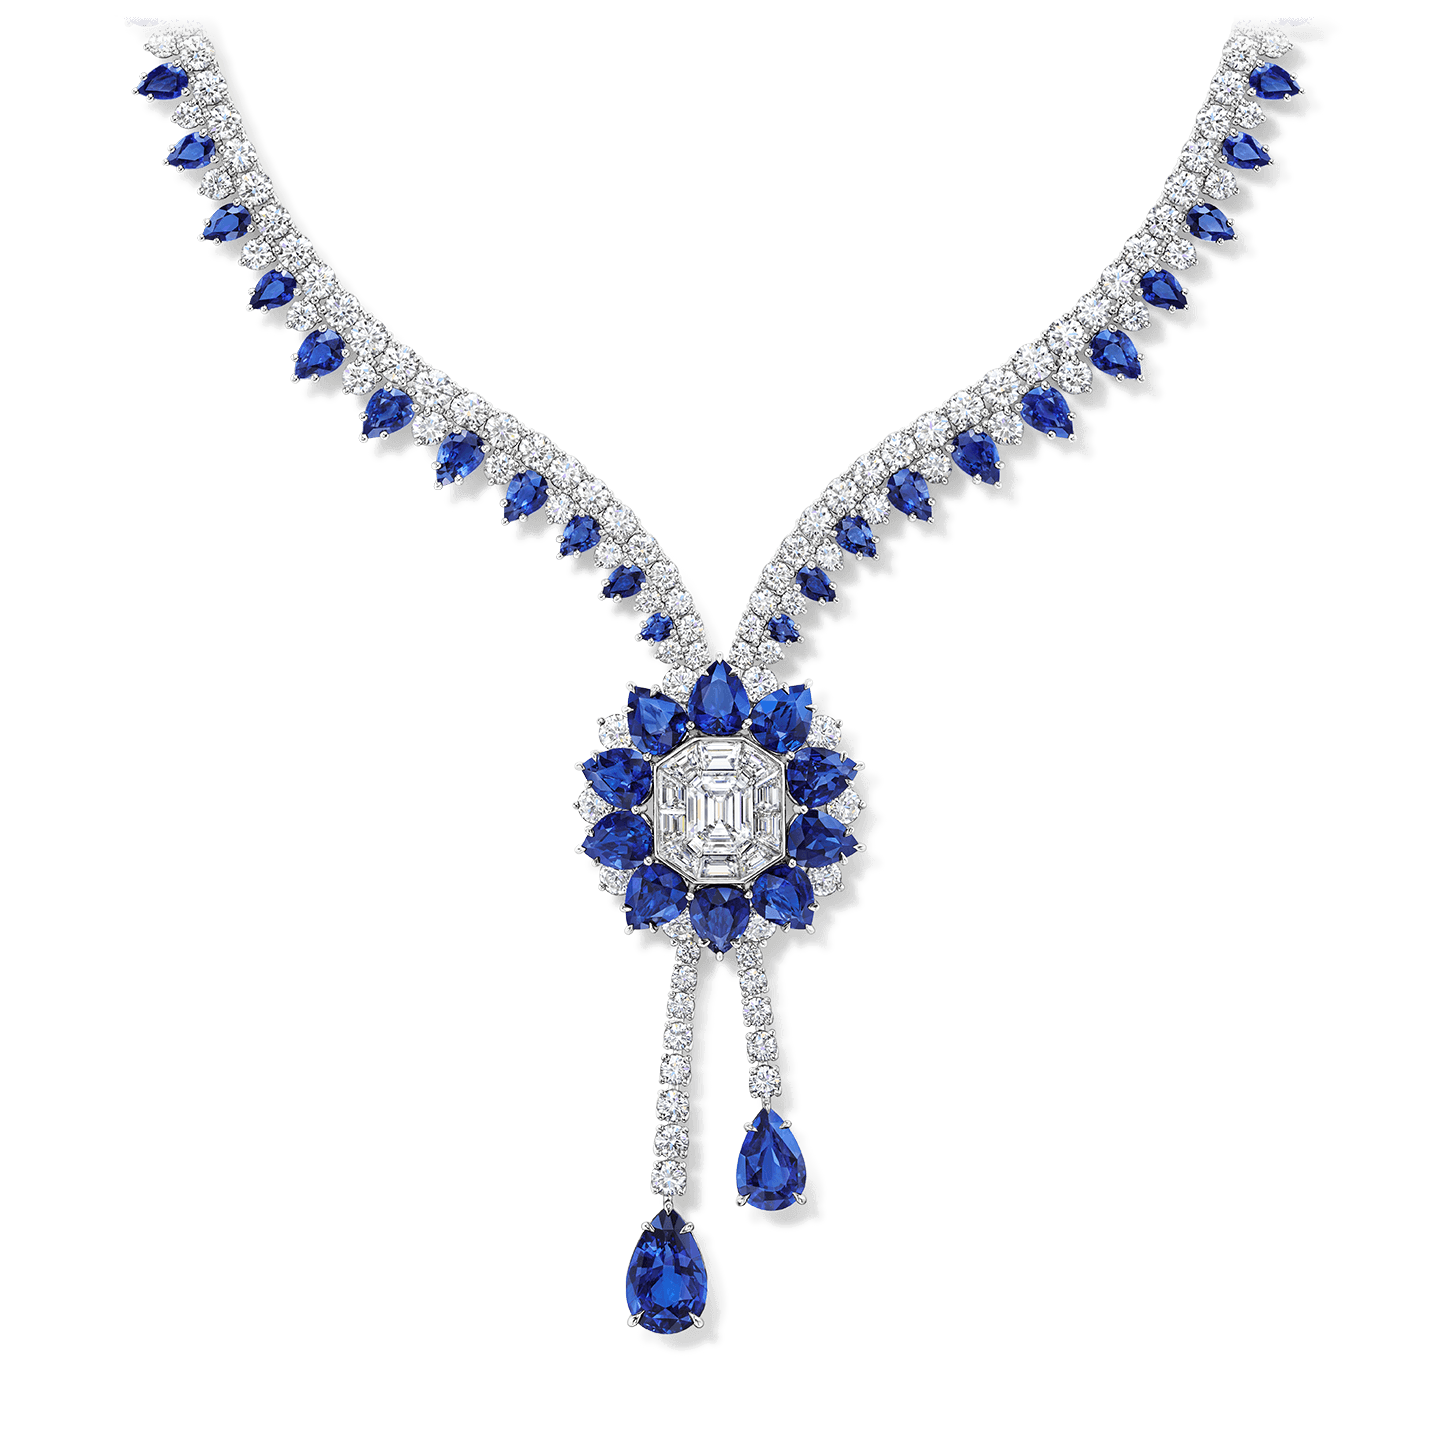 A necklace featuring a 2.77 carat emerald-cut diamond center  stone with 69 pear-shaped sapphires and 204 baguette and round brilliant diamonds set in platinum